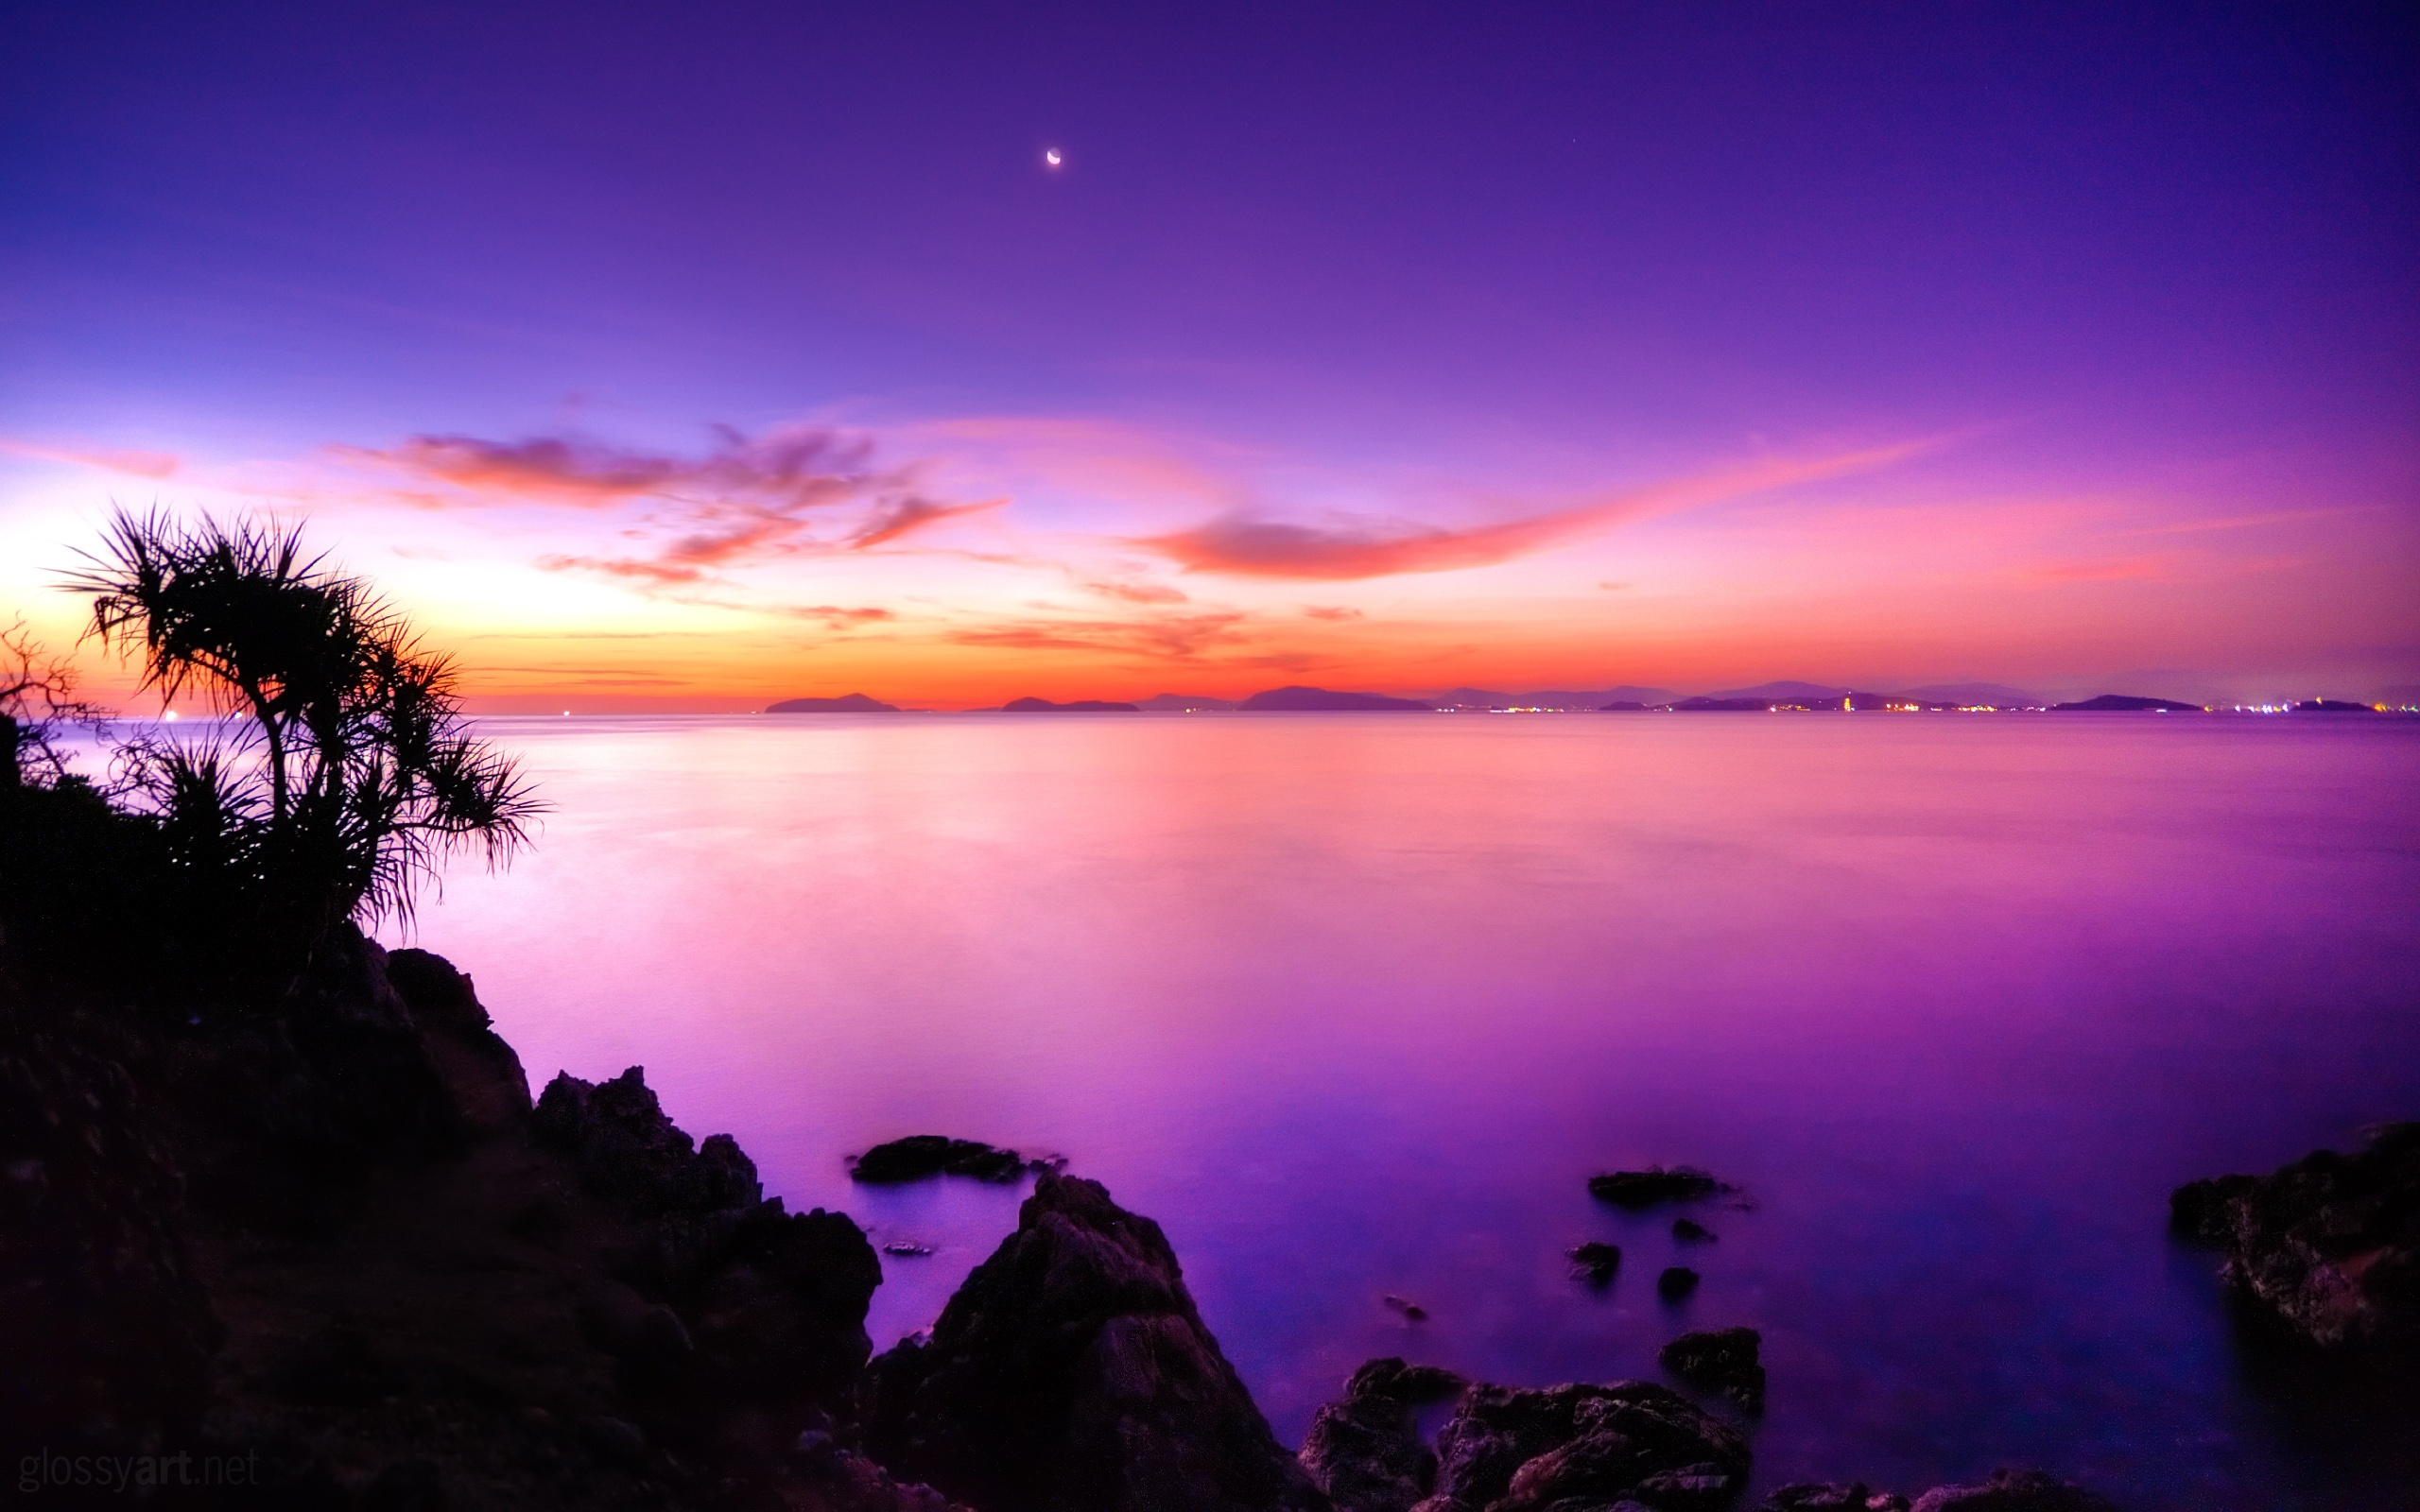 Wallpaper The Purple Sunset Of The Coast 2560x1600 Hd Picture Image